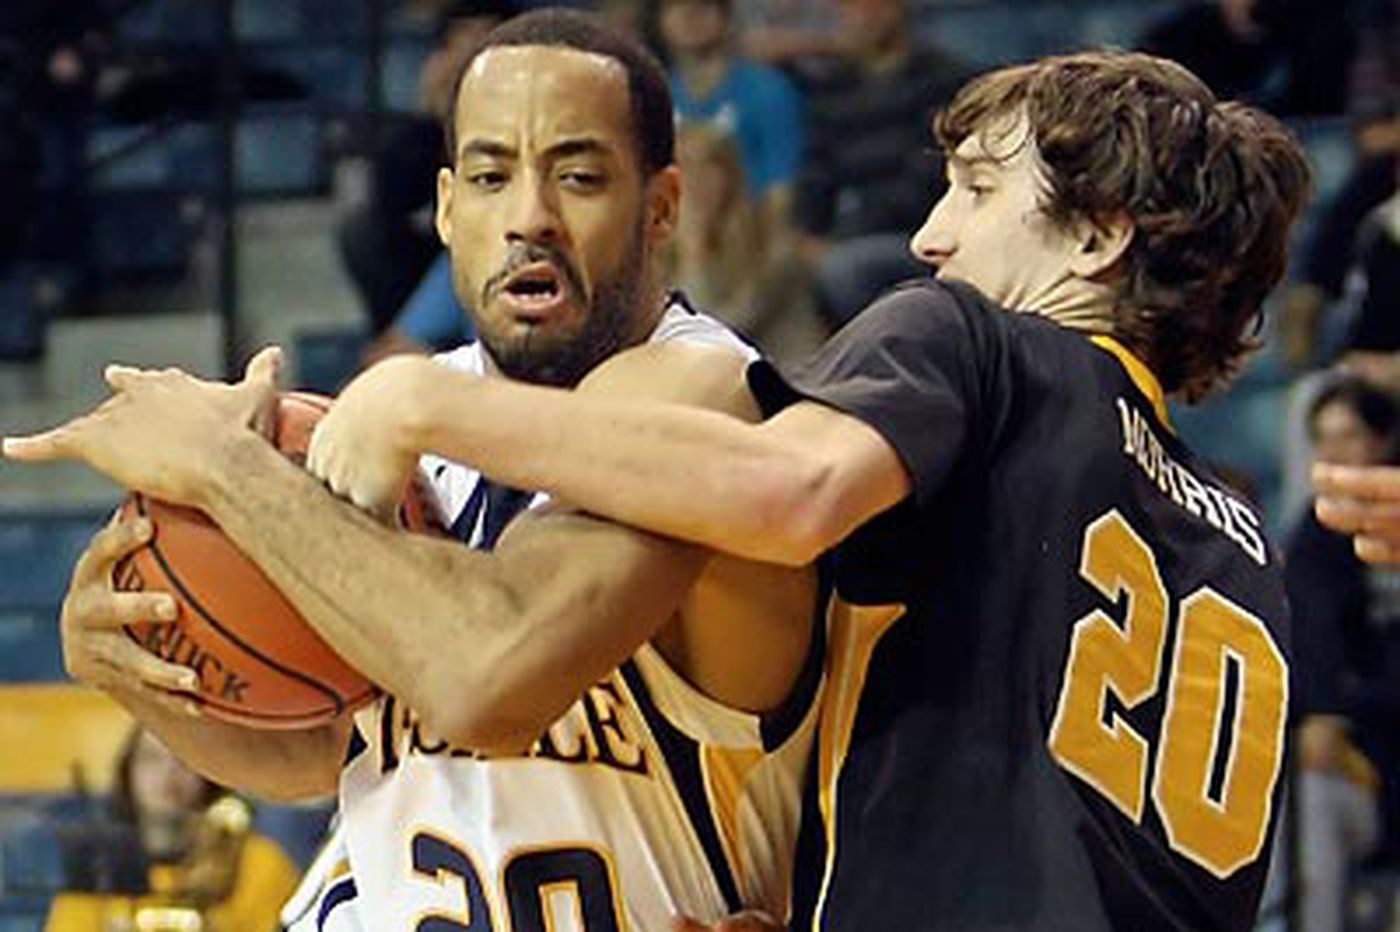 No defending La Salle's loss to shorthanded Towson